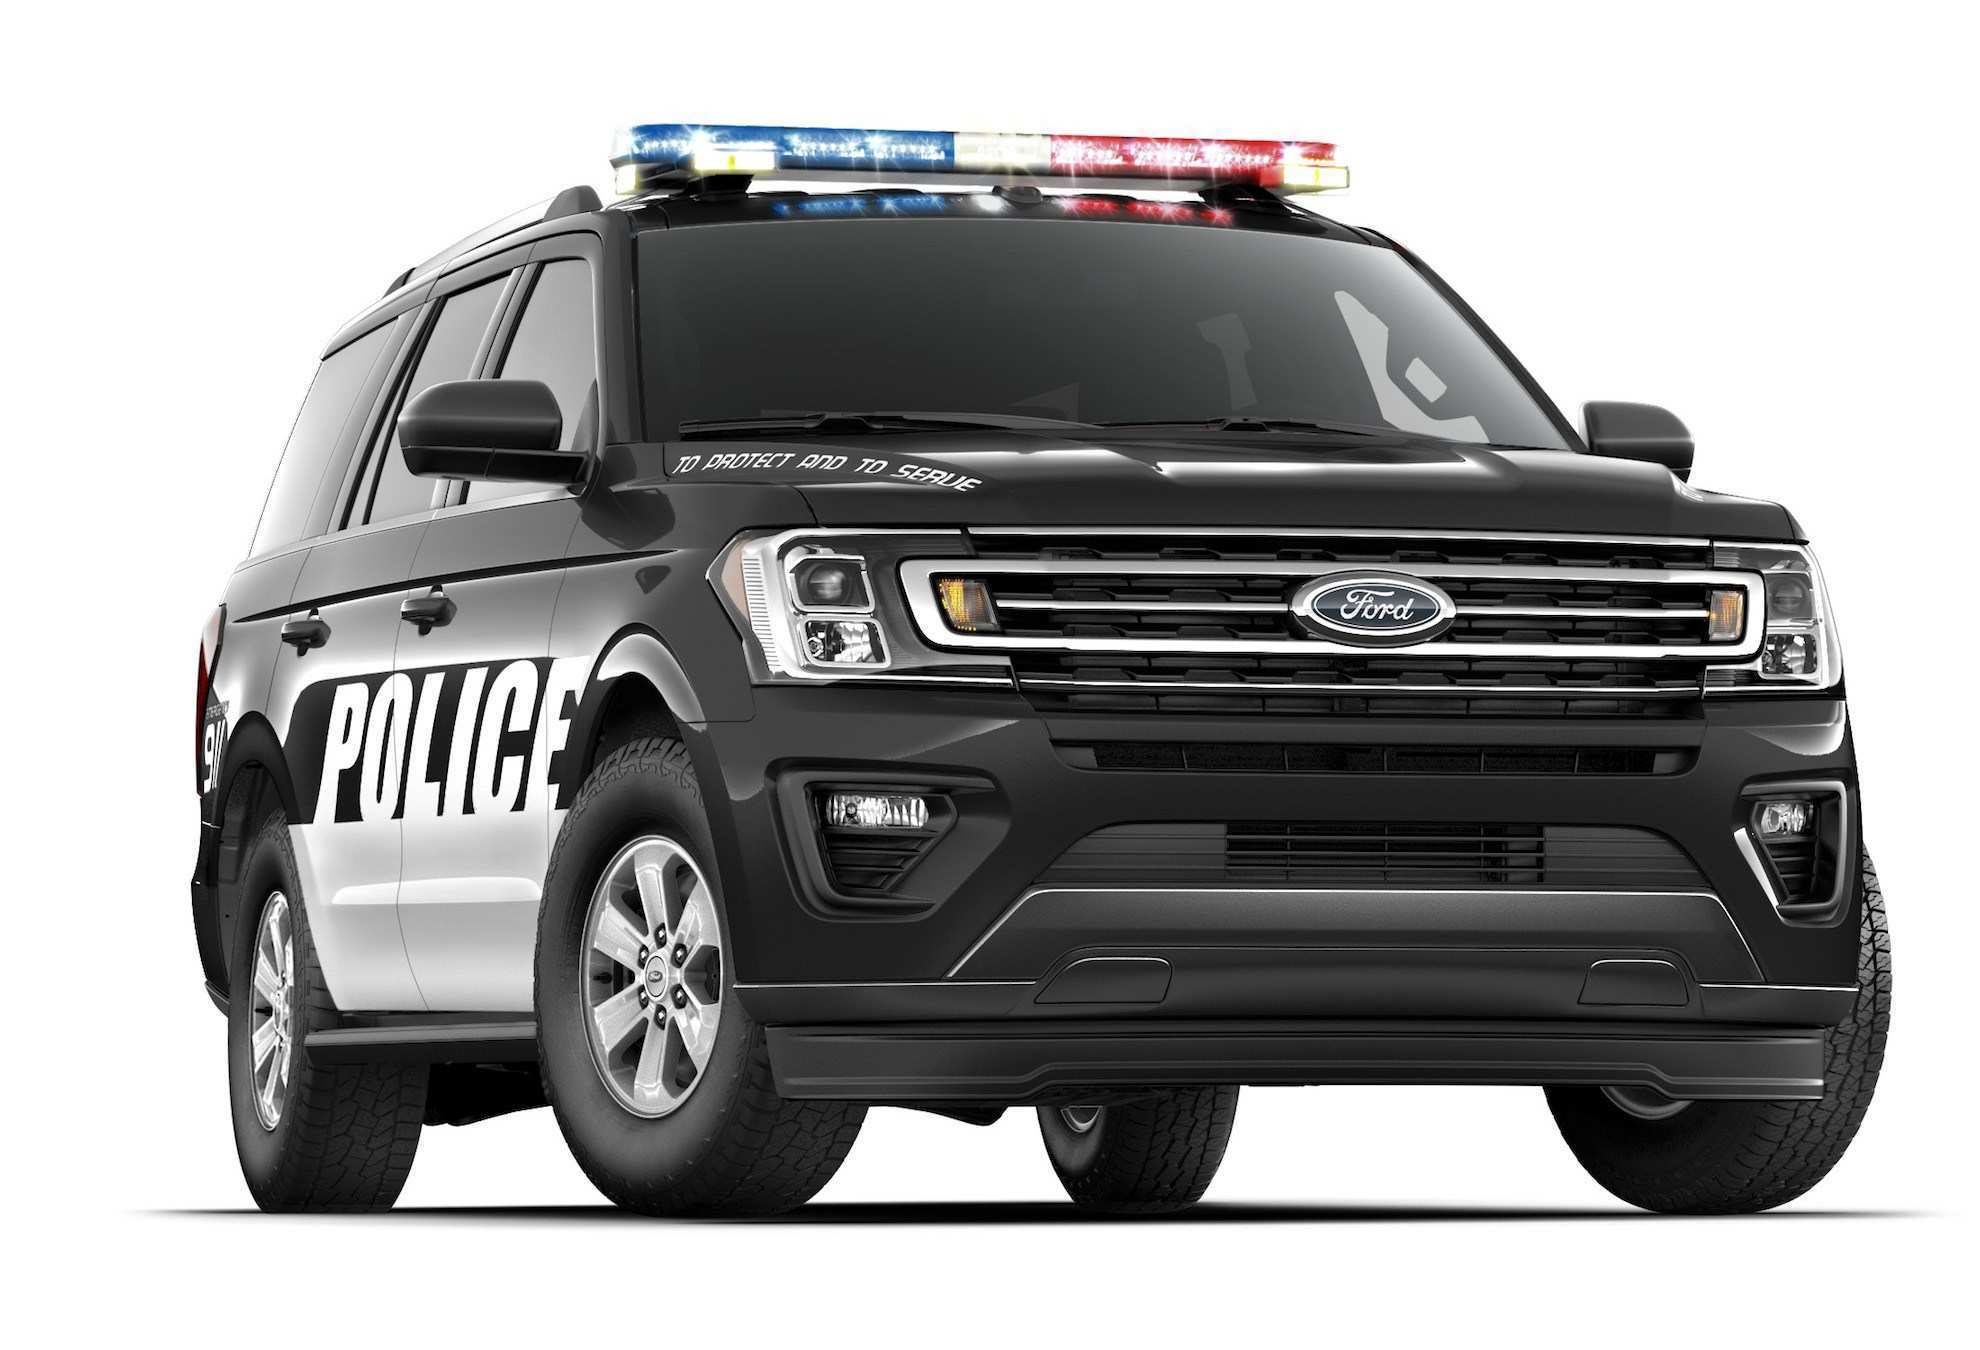 87 Best Review 2019 Chevrolet Police Vehicles Pricing by 2019 Chevrolet Police Vehicles